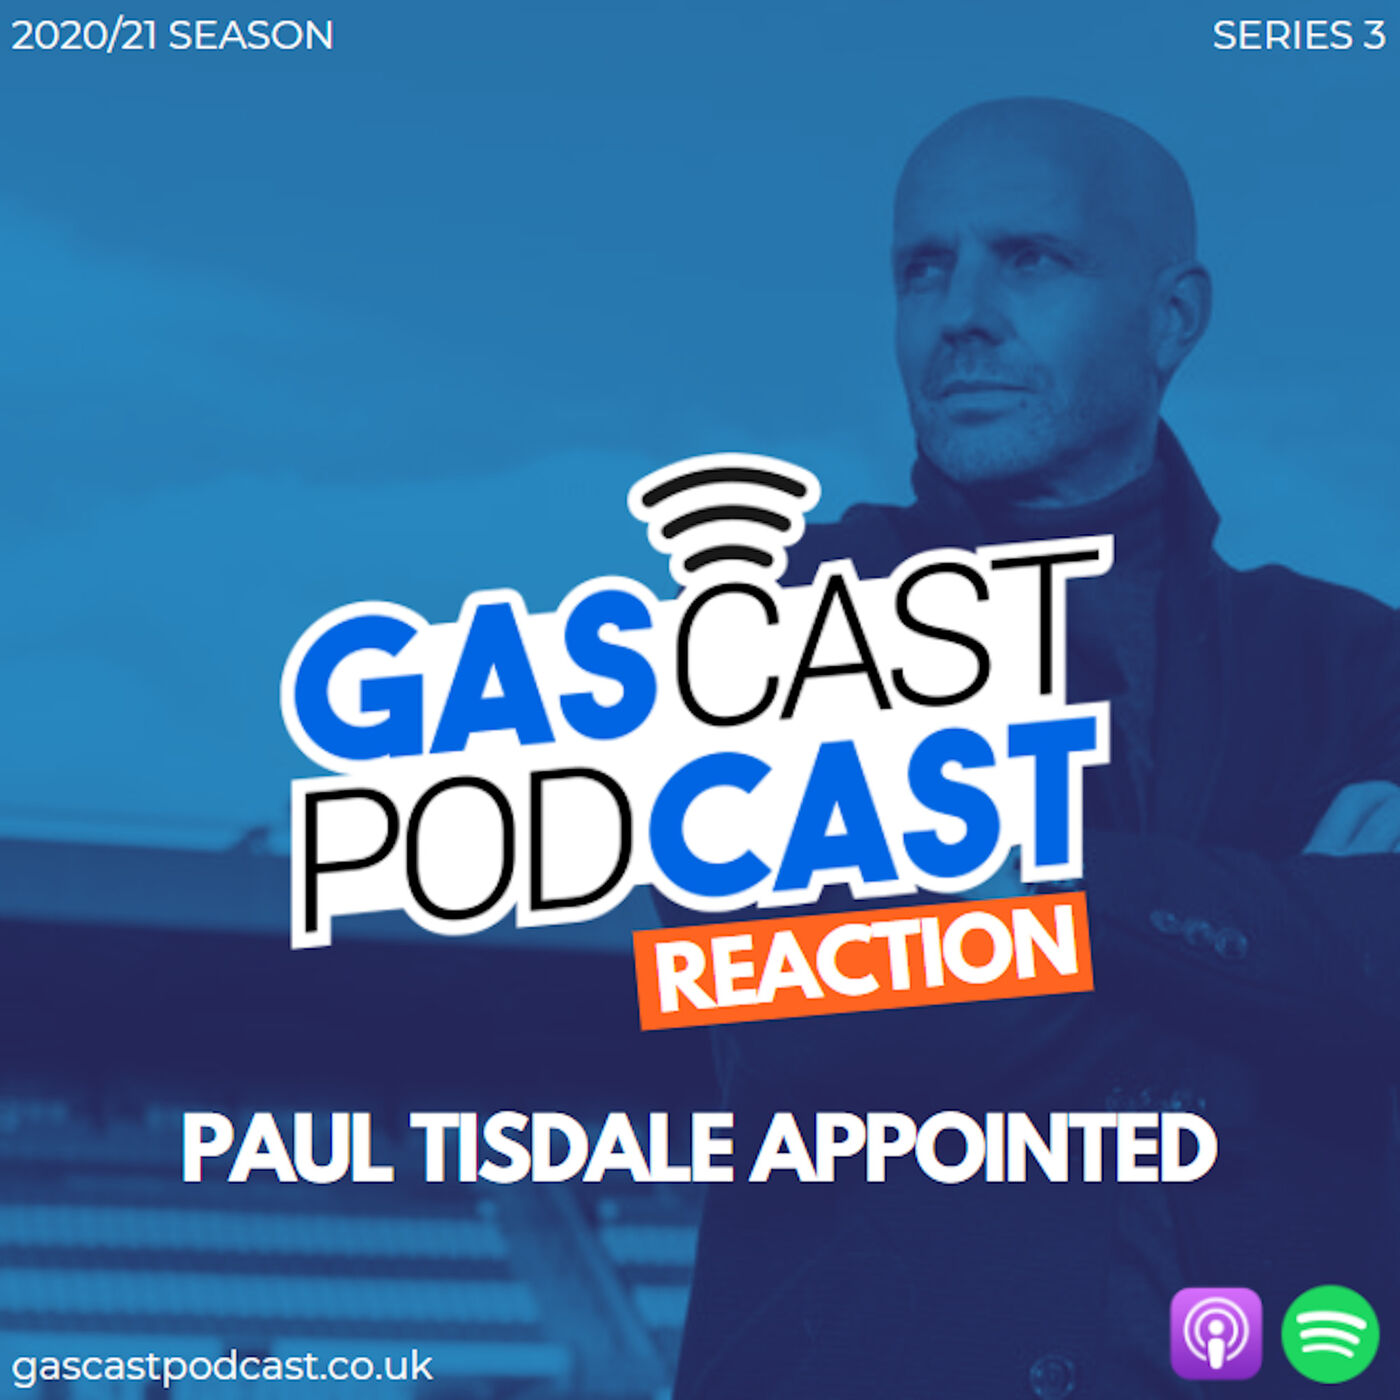 REACTION: Tisdale Appointed